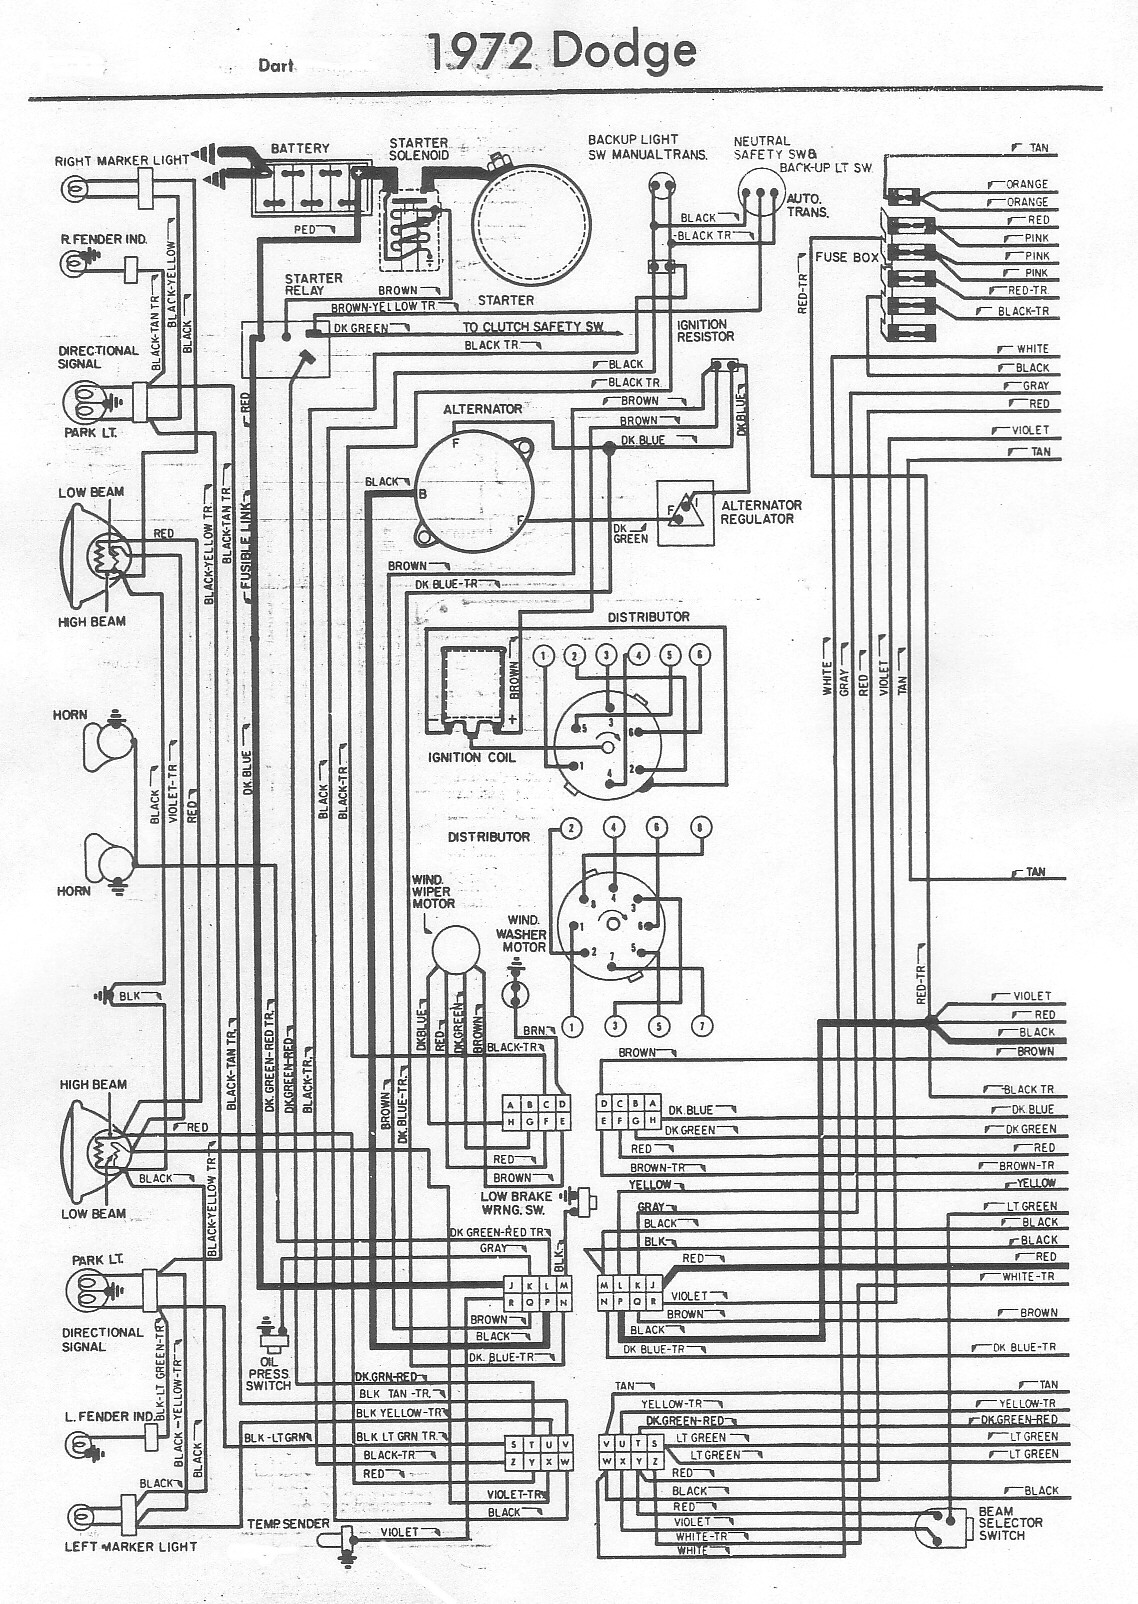 5793250 72DartA 72 swing horn ingniton wiring problem moparts restoration & a12 1972 dodge dart swinger wiring diagram at creativeand.co